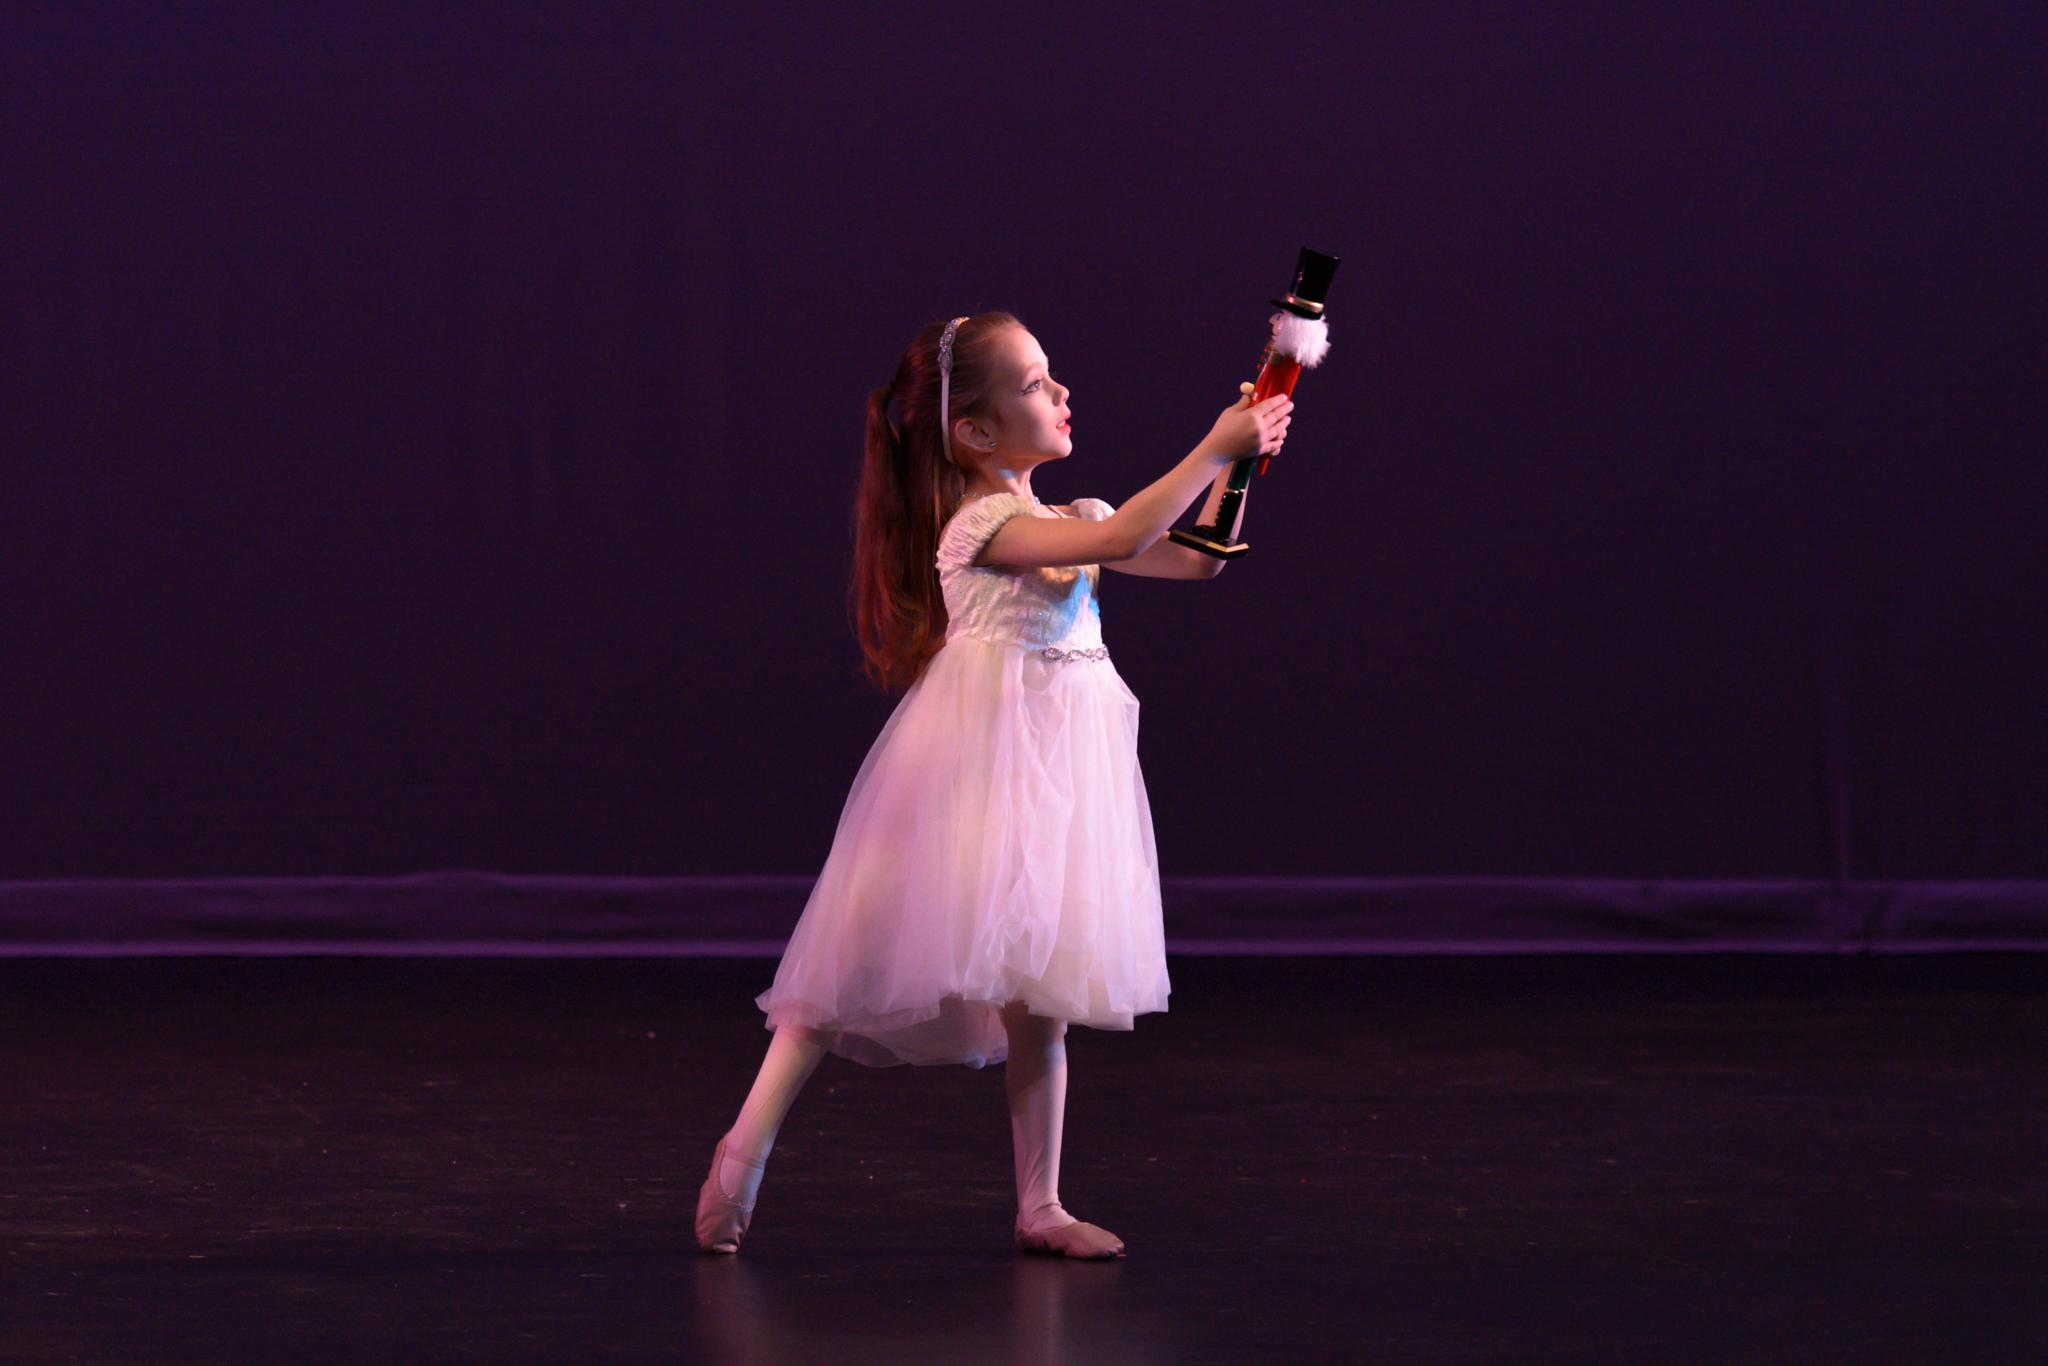 Clara and the Nutcracker by Jeff Tostenrude